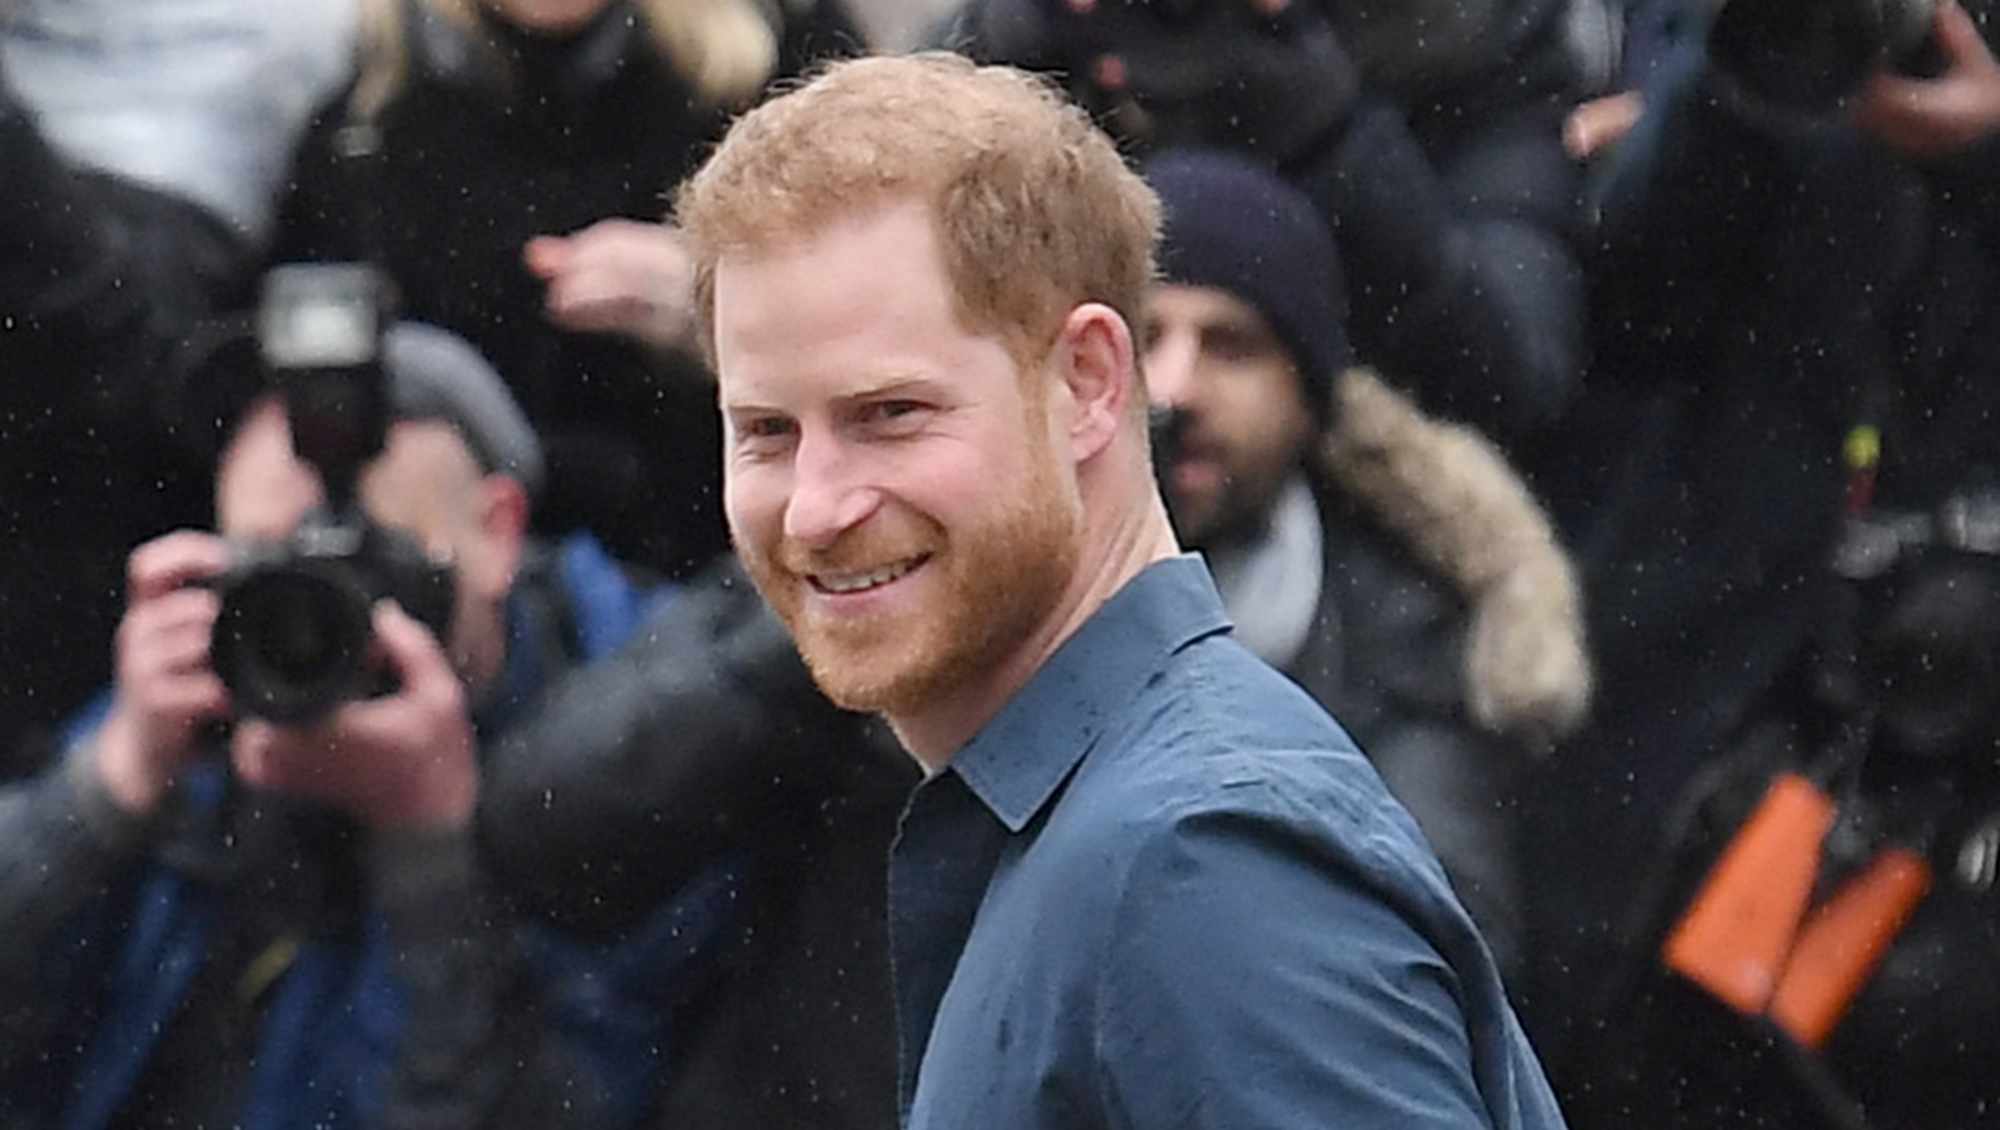 Prince Harry 'booked out entire first class carriage' after environmental speech